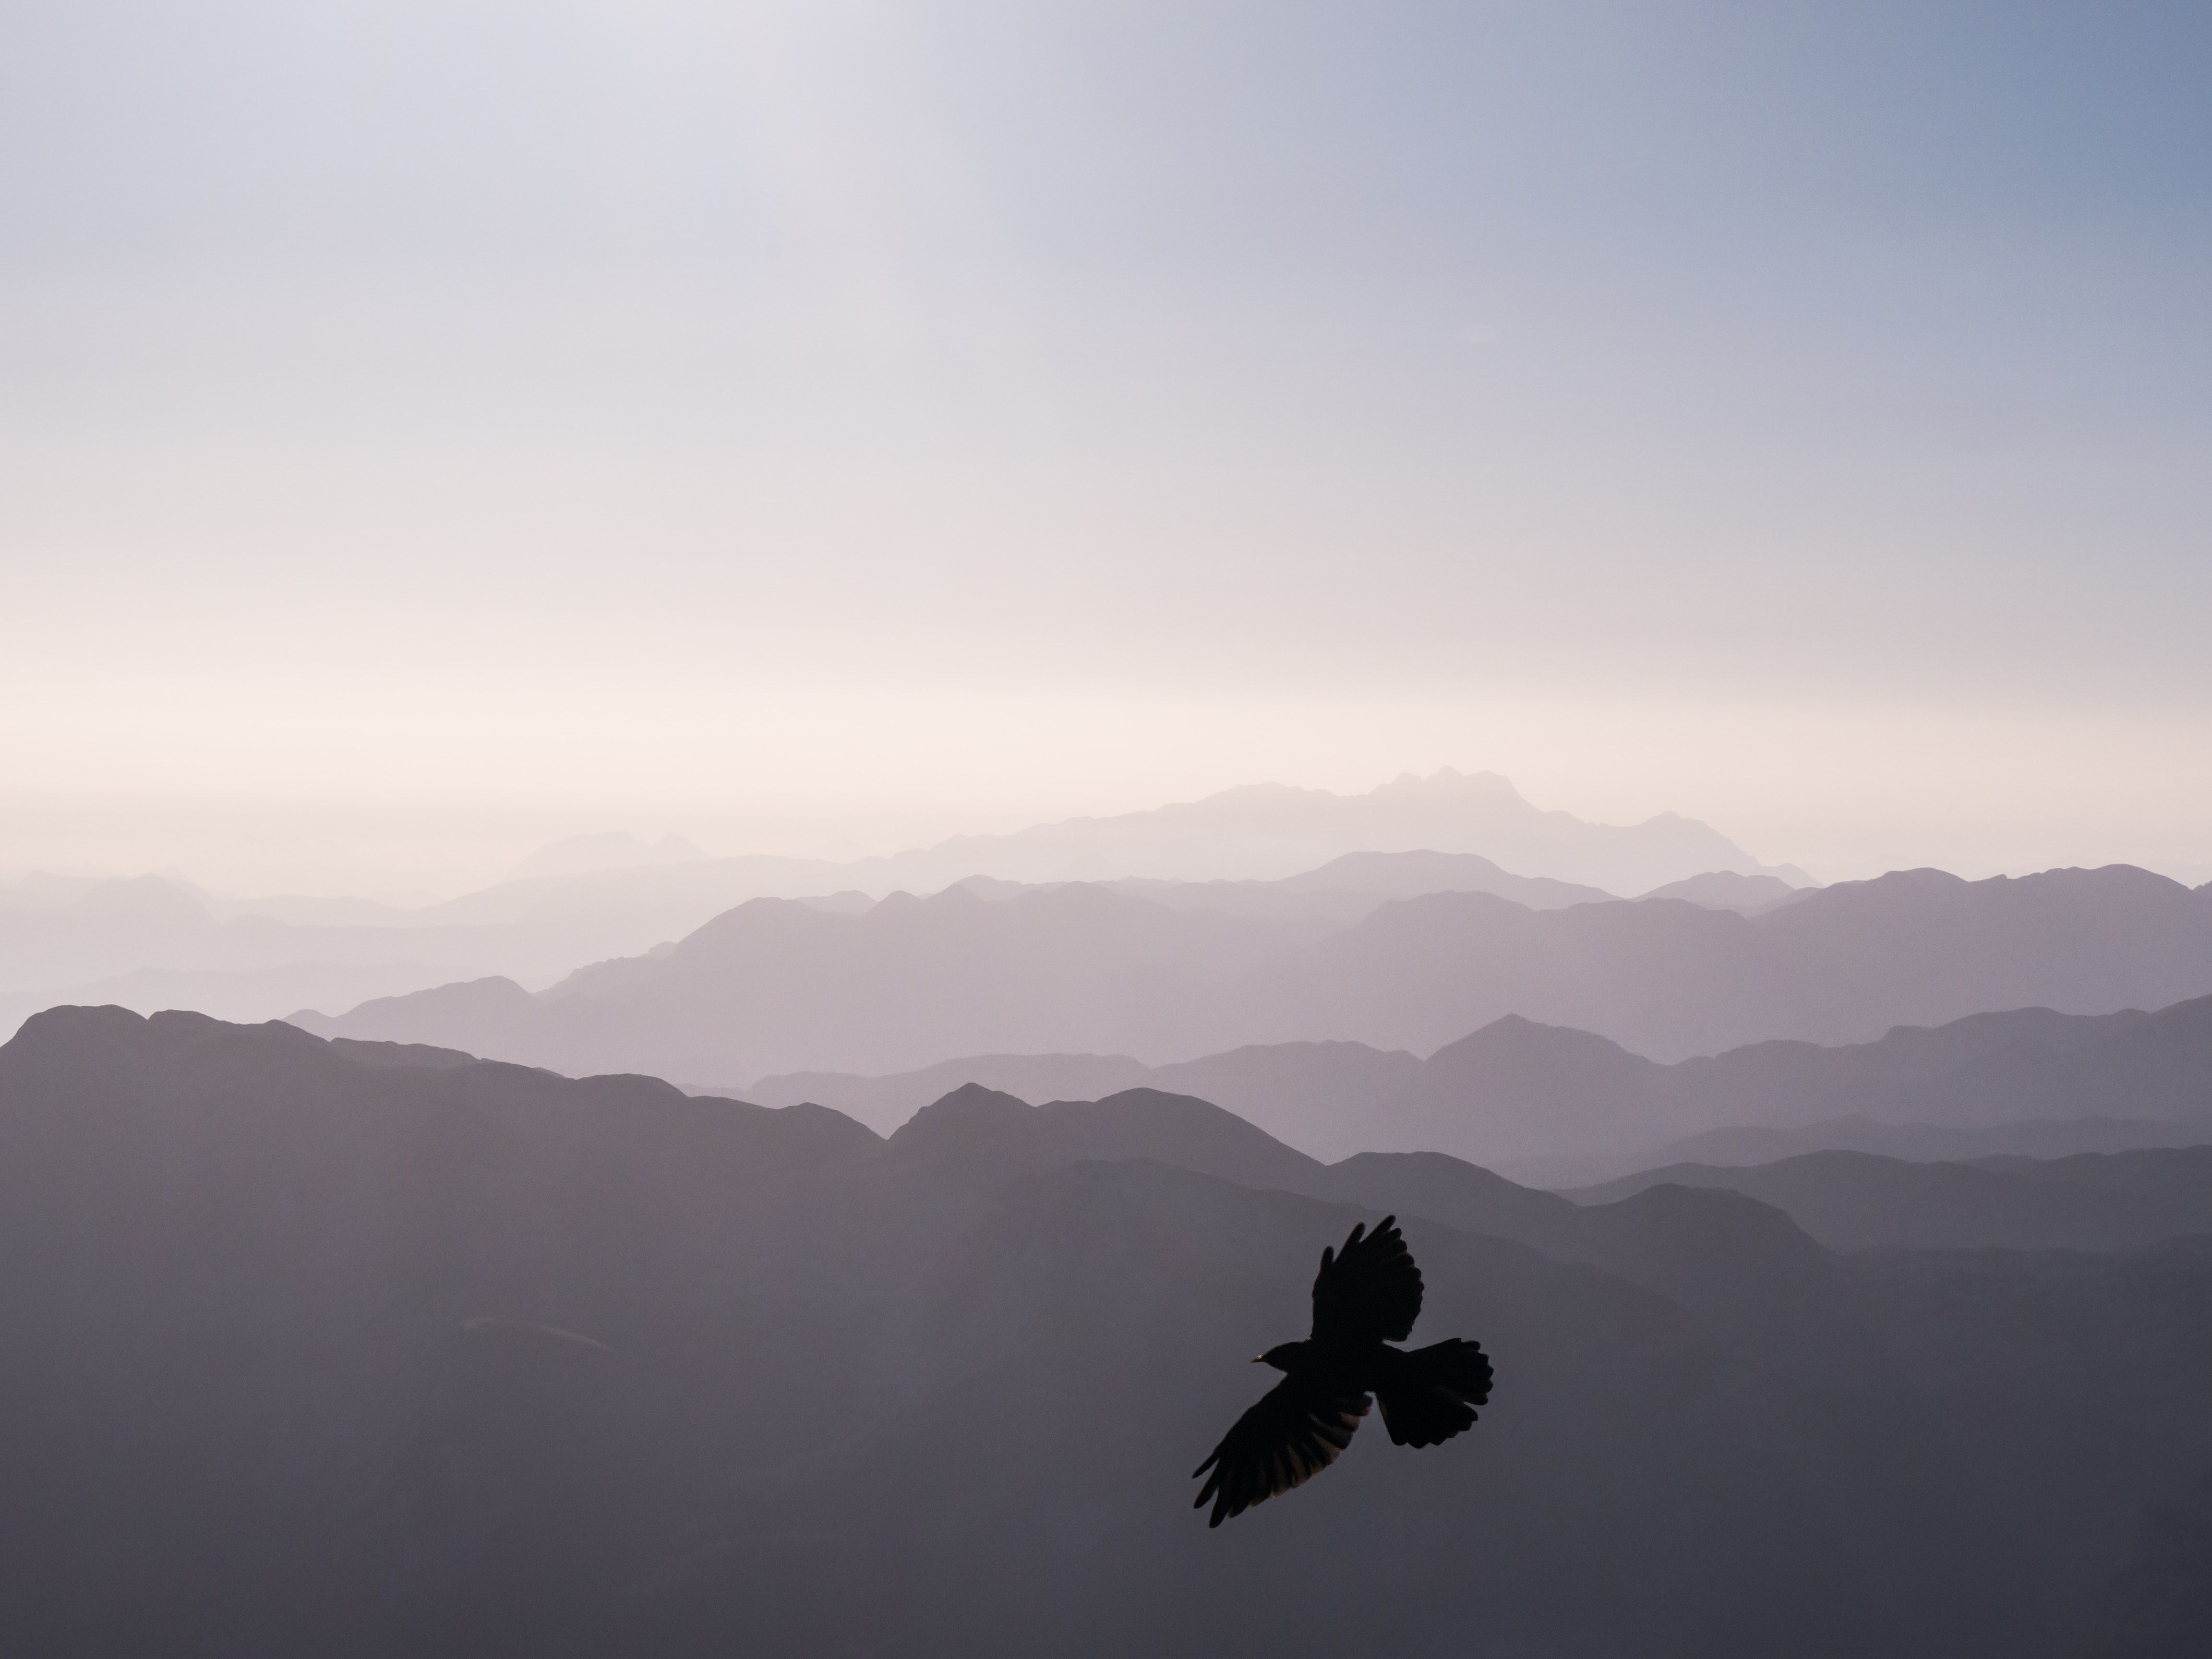 bird flying over mountains